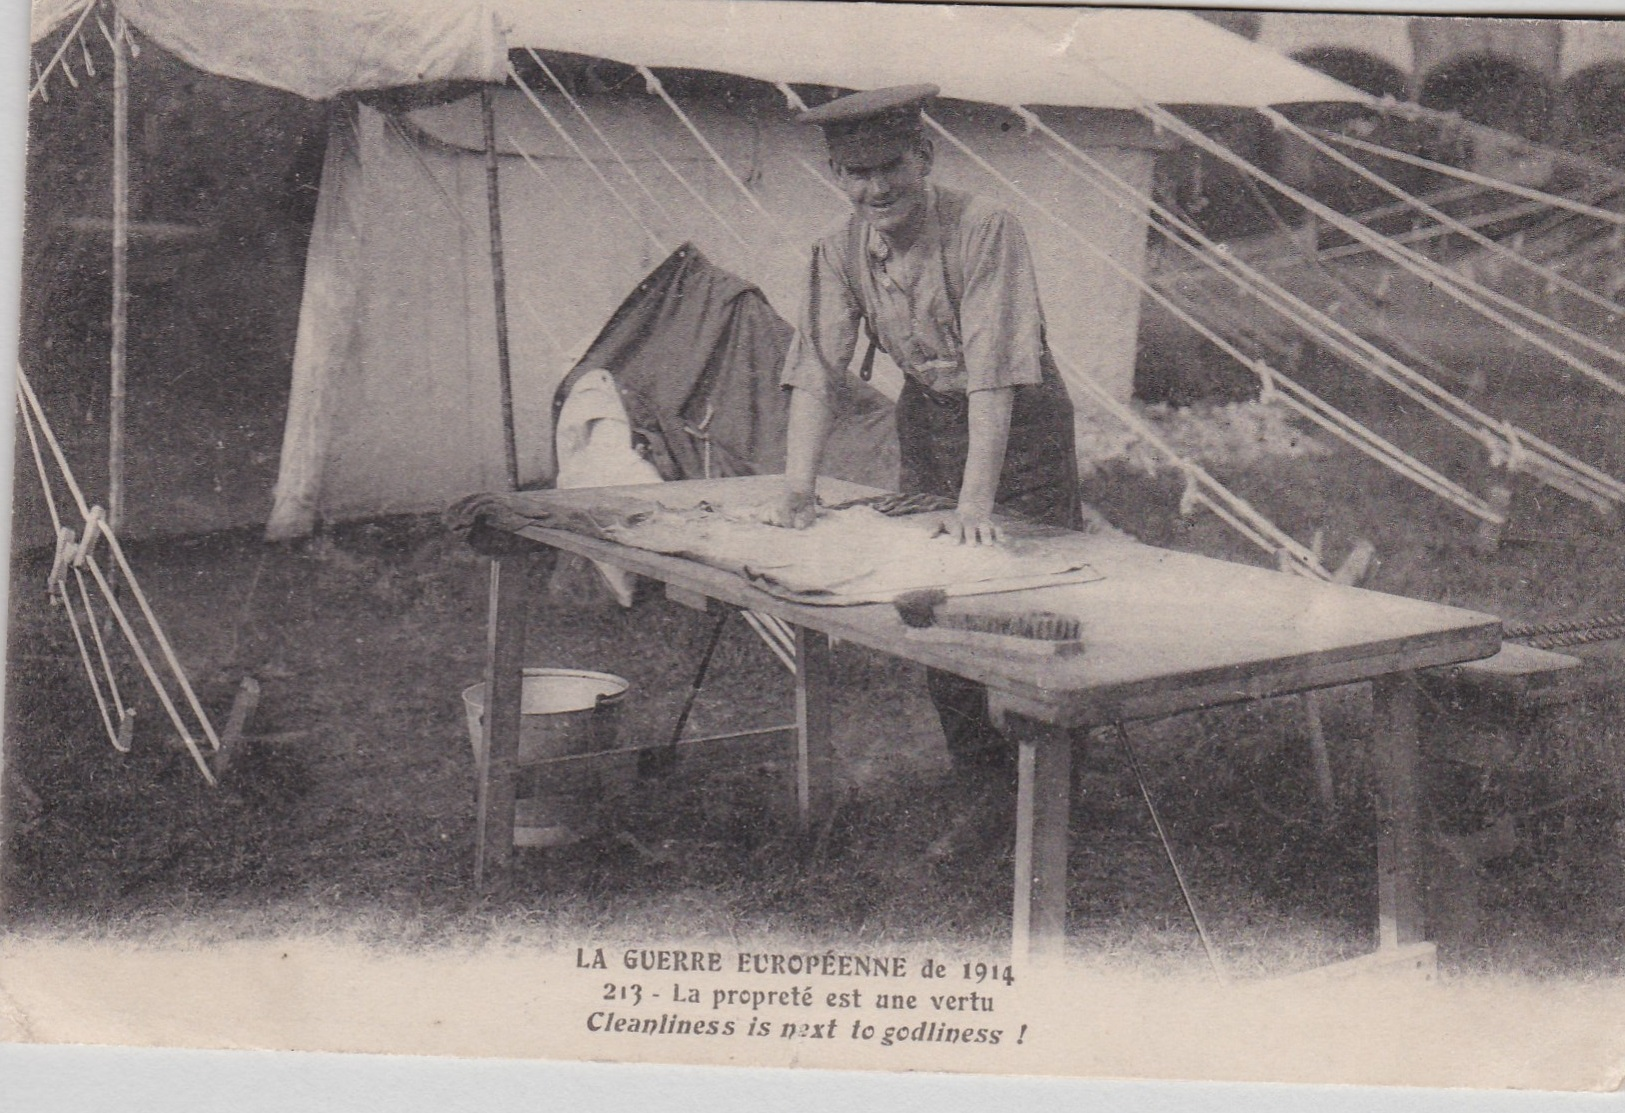 """Lot 123 - La Guerre European de 1914 WWI Postcard """"Cleanliness is next to Godliness!"""", shows a soldier washing"""